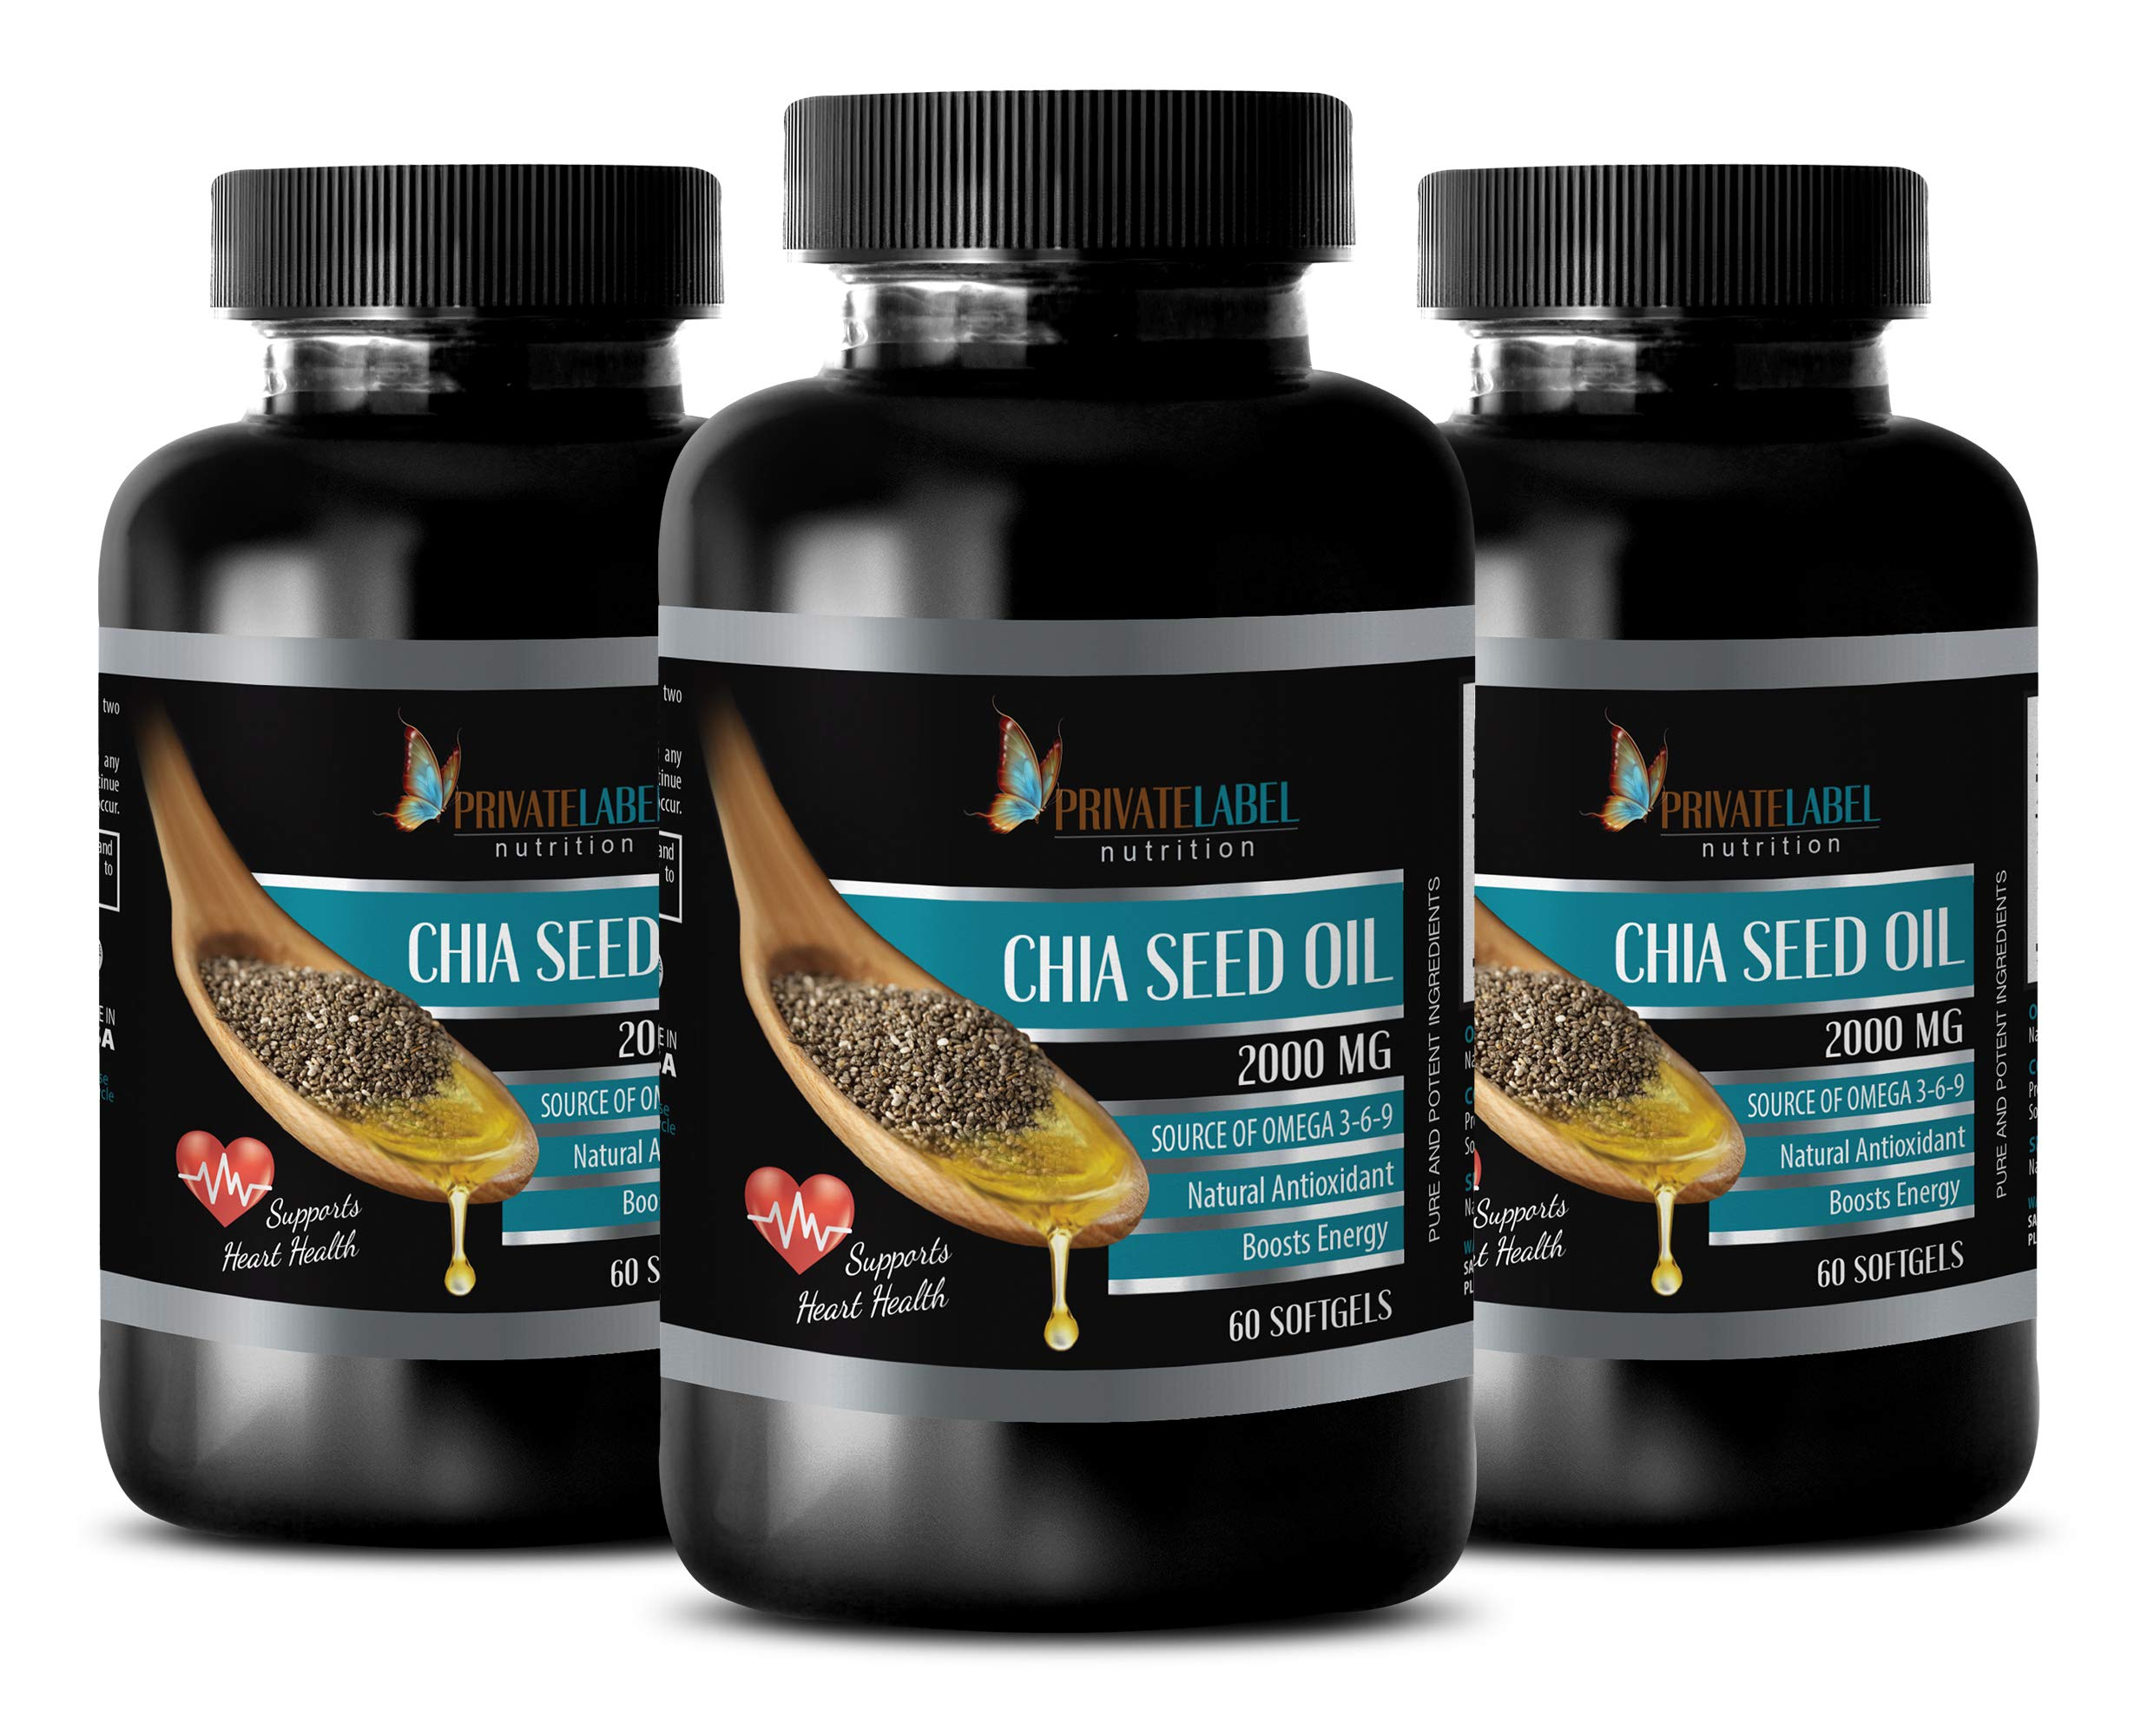 Immune System Natural Products - CHIA Seed Oil 2000MG - Source of Omega 3-6-9 - Supports Heart Health - chia Seed softgels - 3 Bottles (180 Softgels)